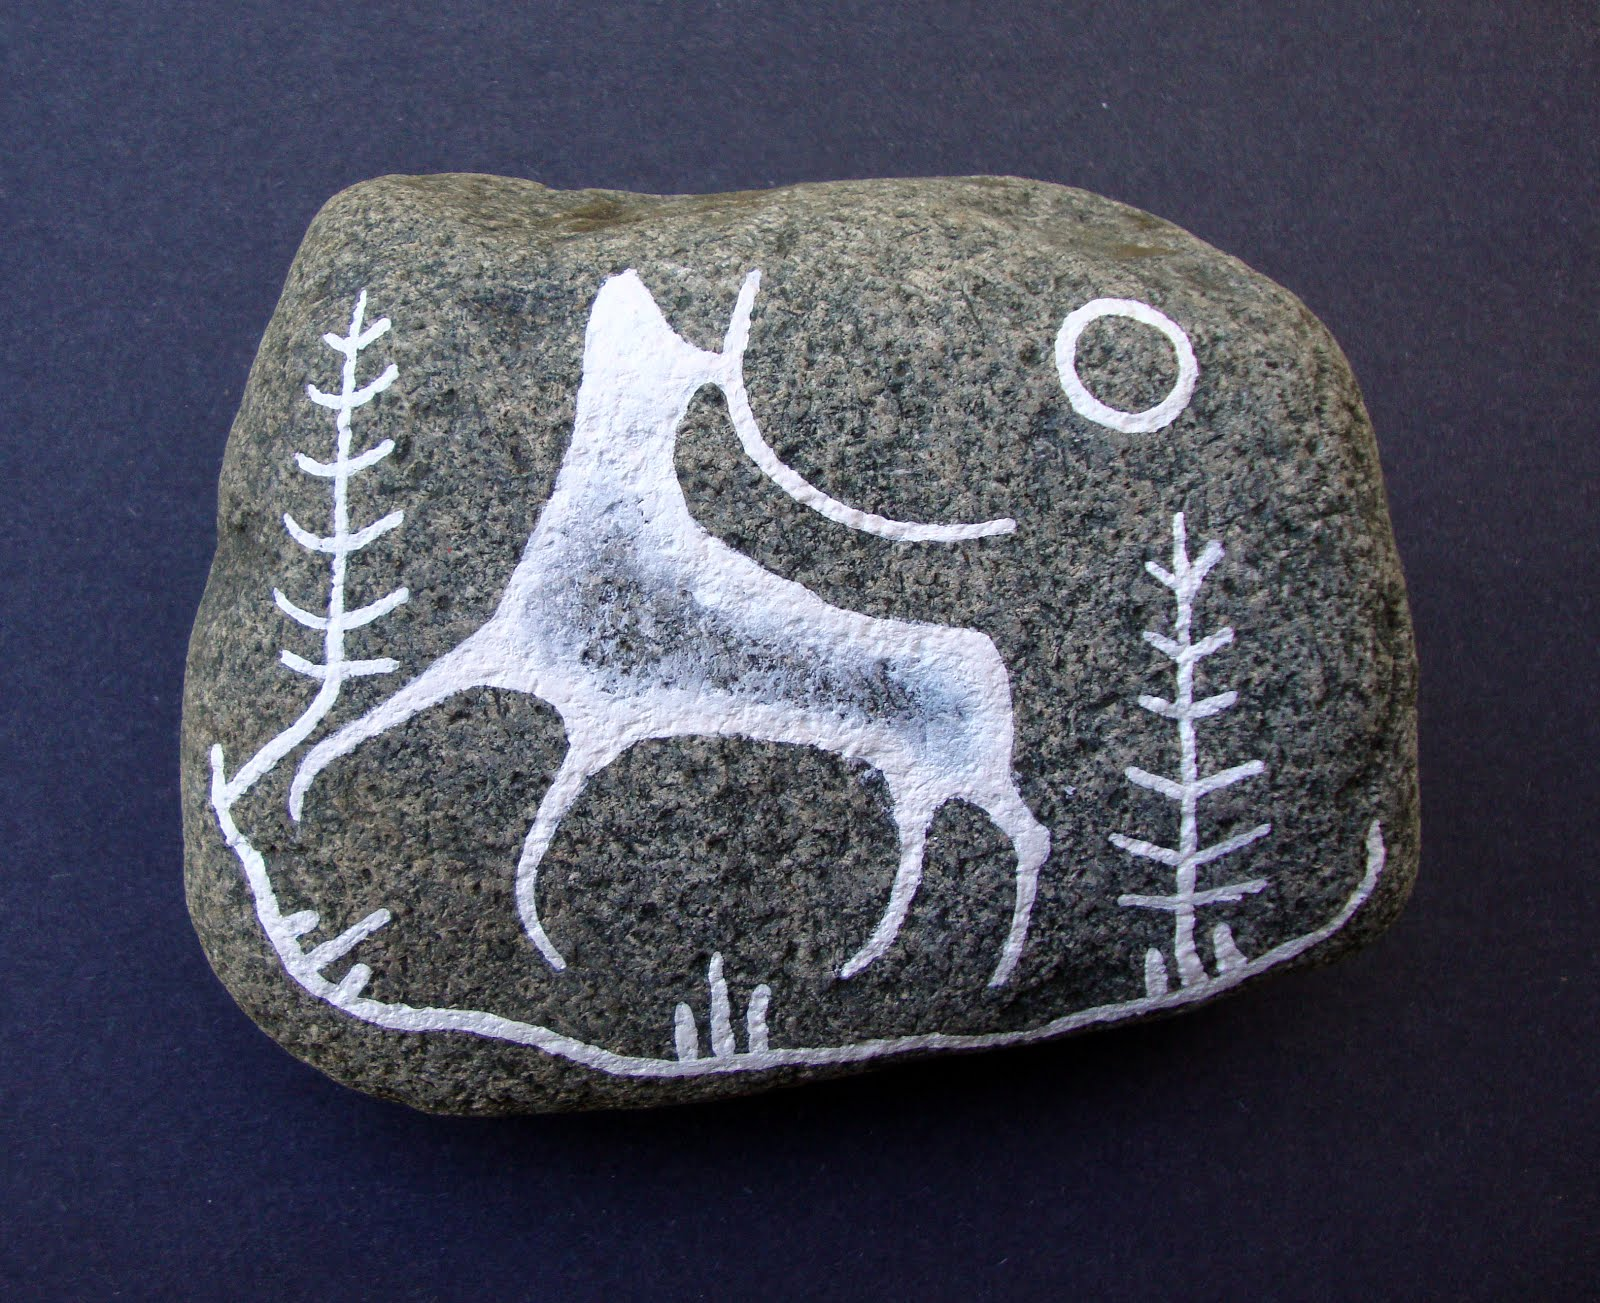 VIDEO: ROCK ART by MISHIBINIJIMA